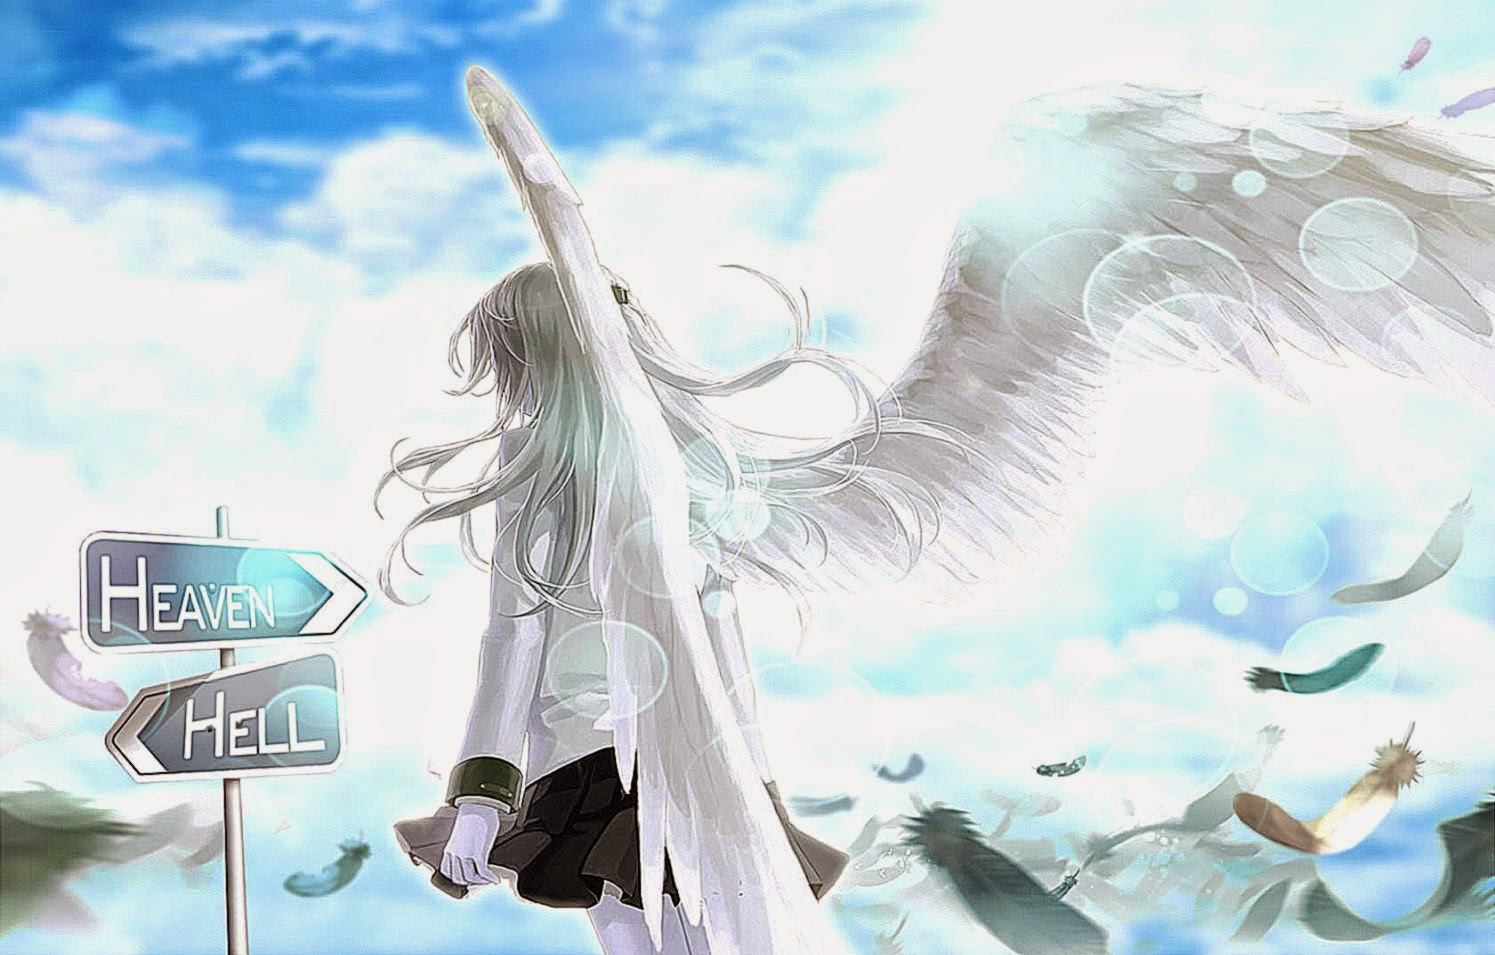 Anime Angel Wings Wallpaper 2014 Hd HD Wallpapers Desktop Background 1495x955